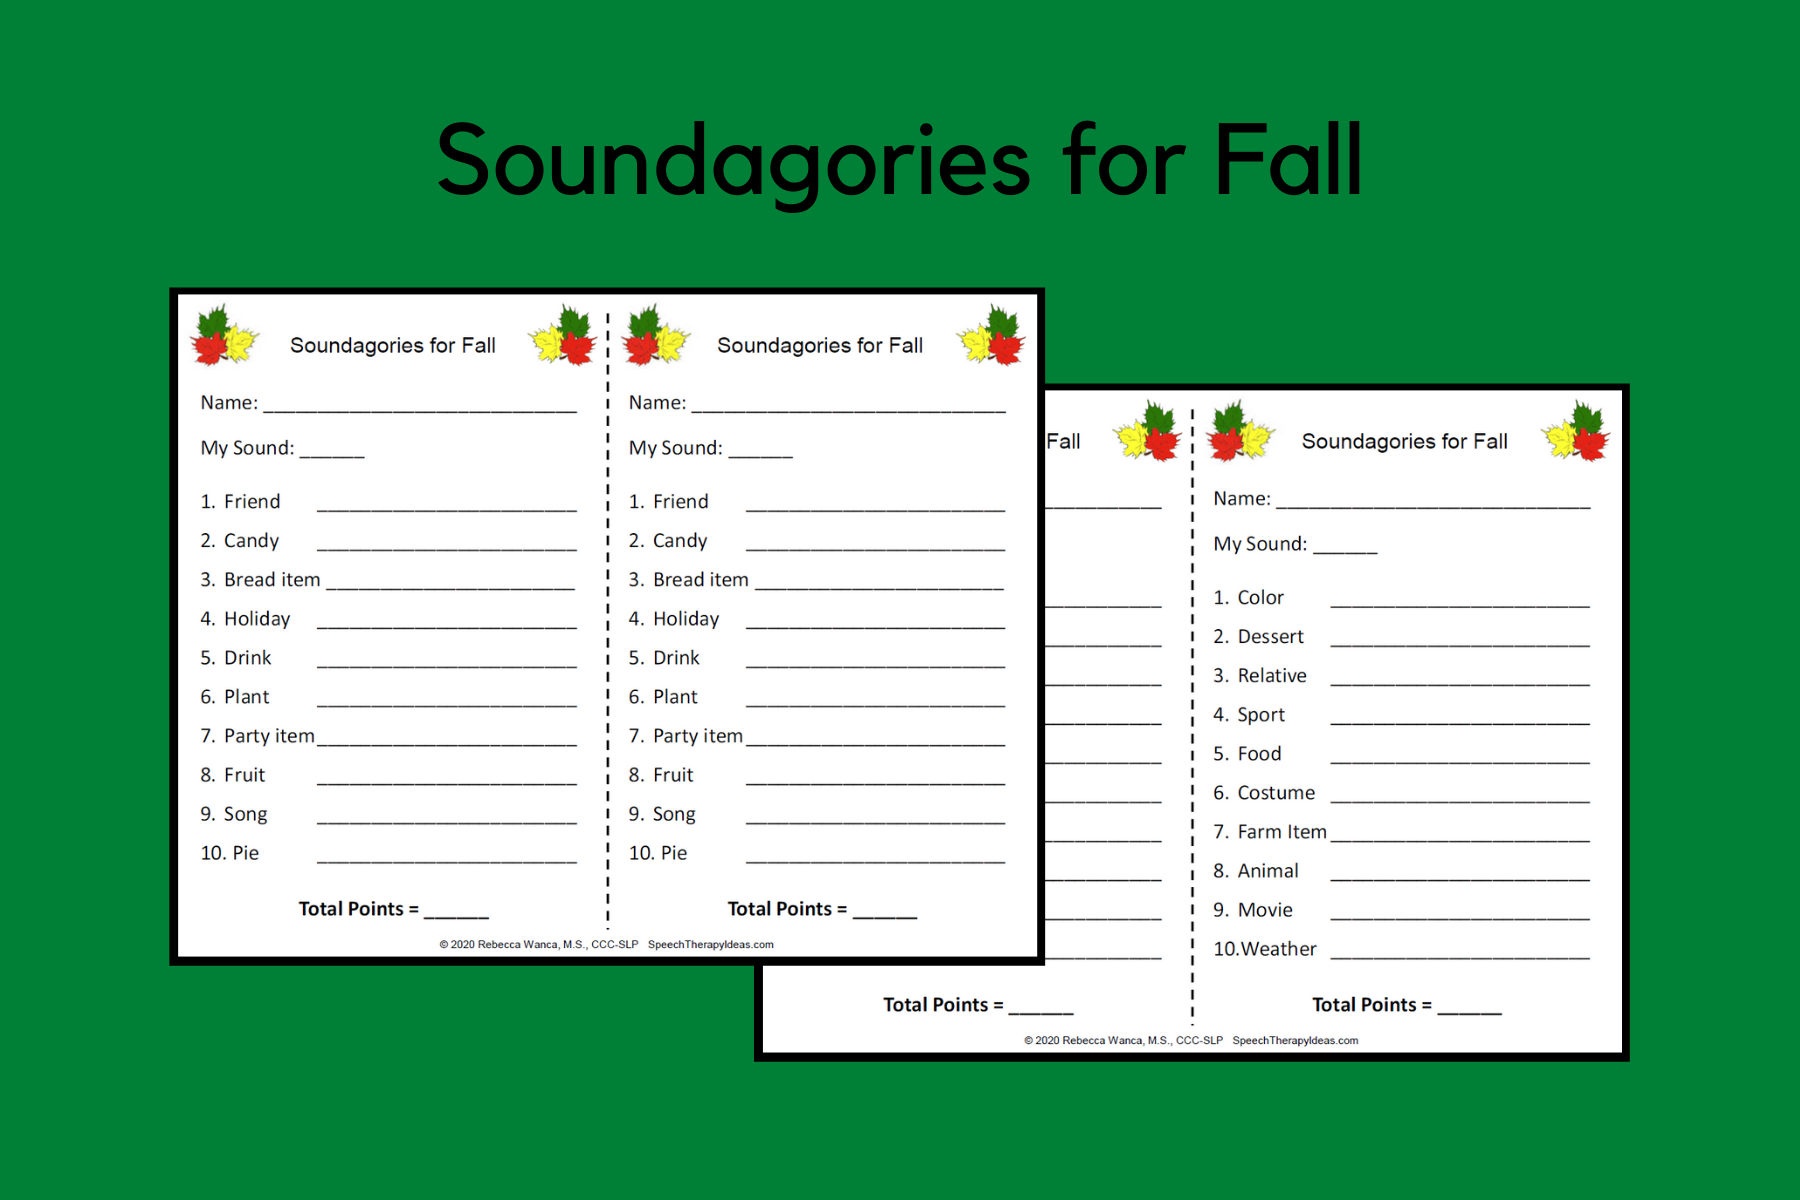 Soundagories for Fall